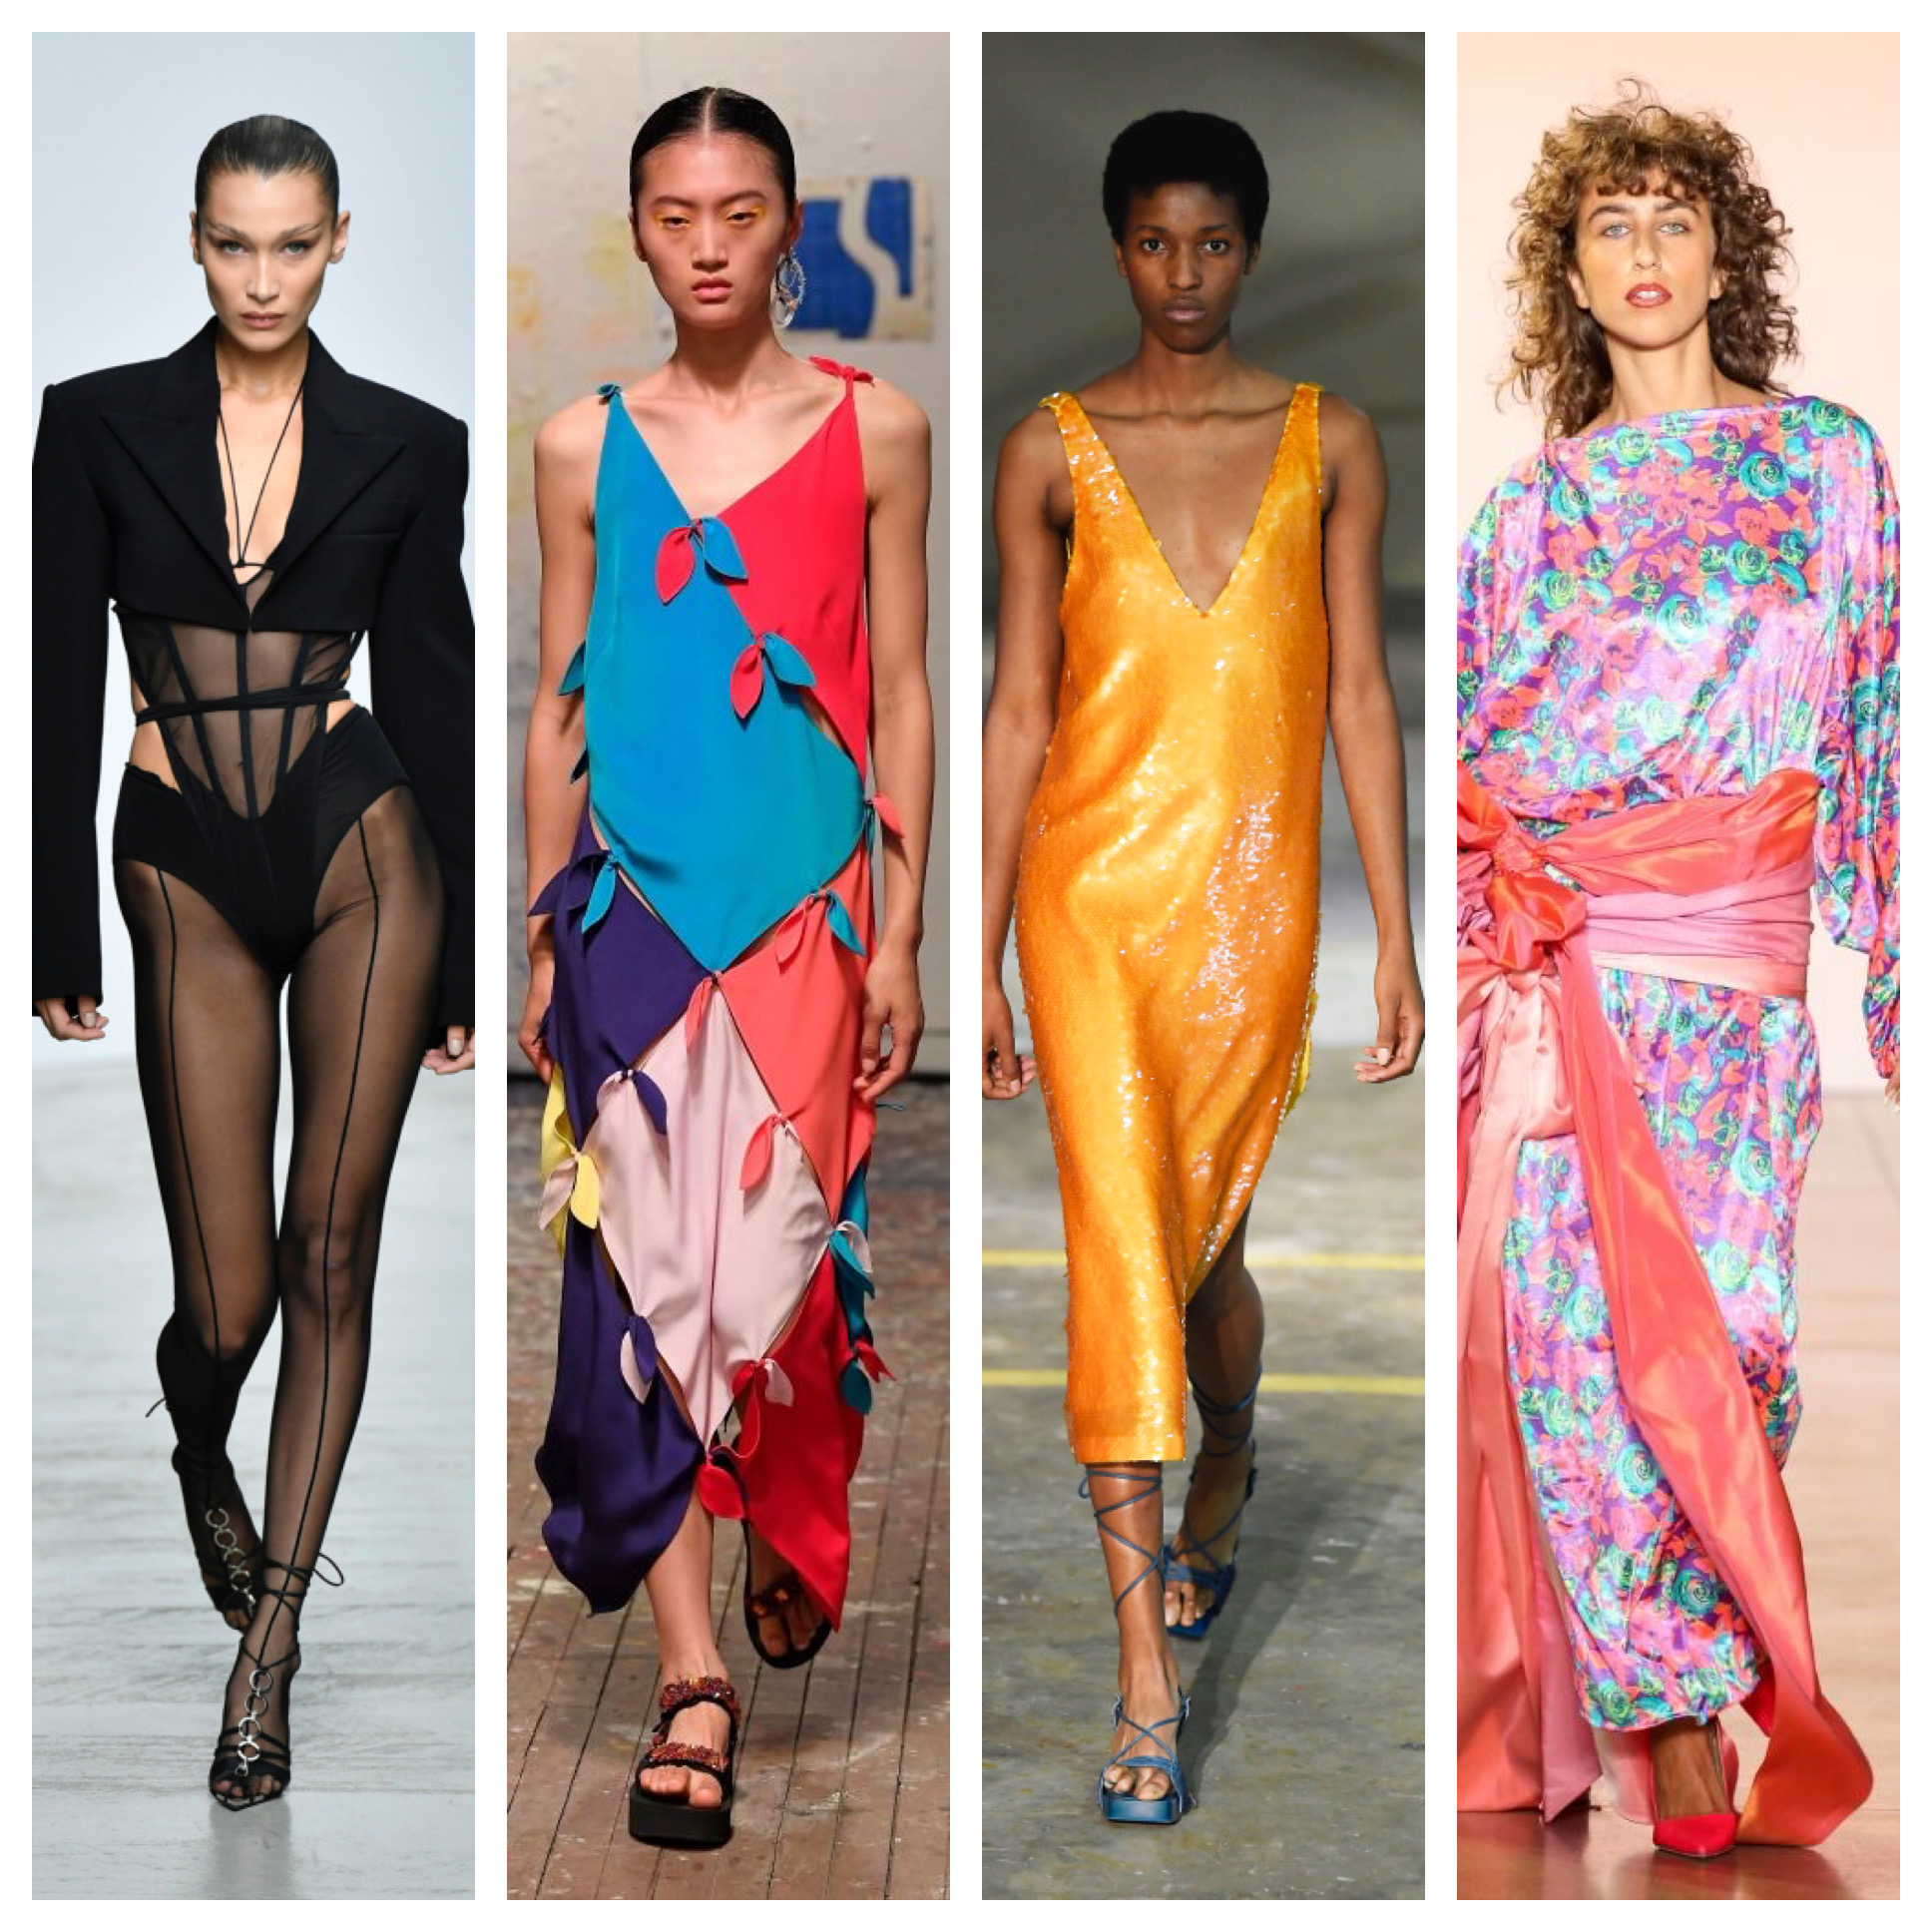 The Biggest Spring 2020 Fashion Trends From the Runway